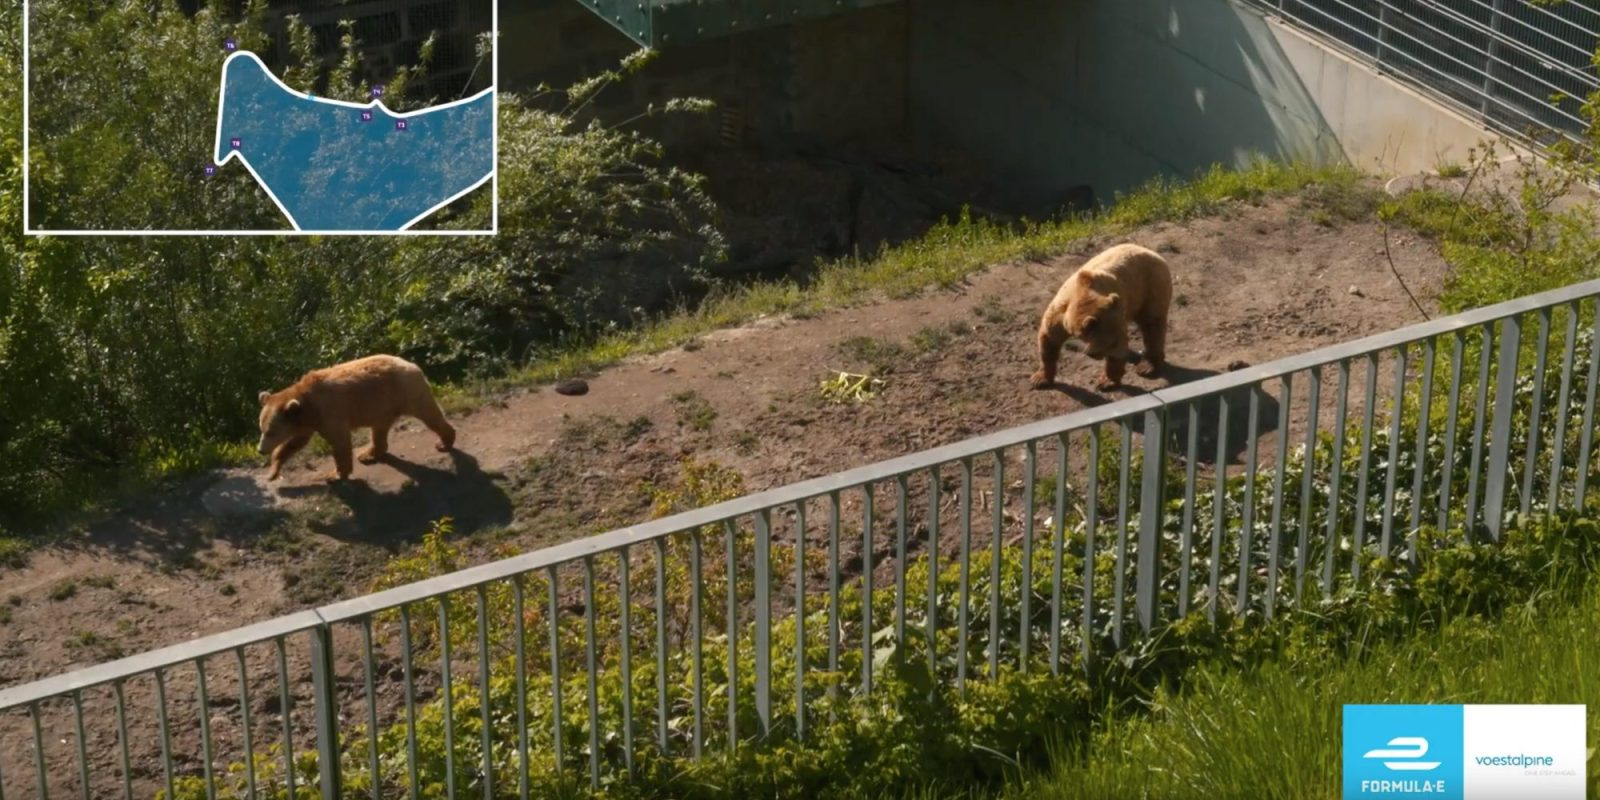 Audi chases Techeetah at the Bern ePrix on Saturday, at a track with…a bear pit!?